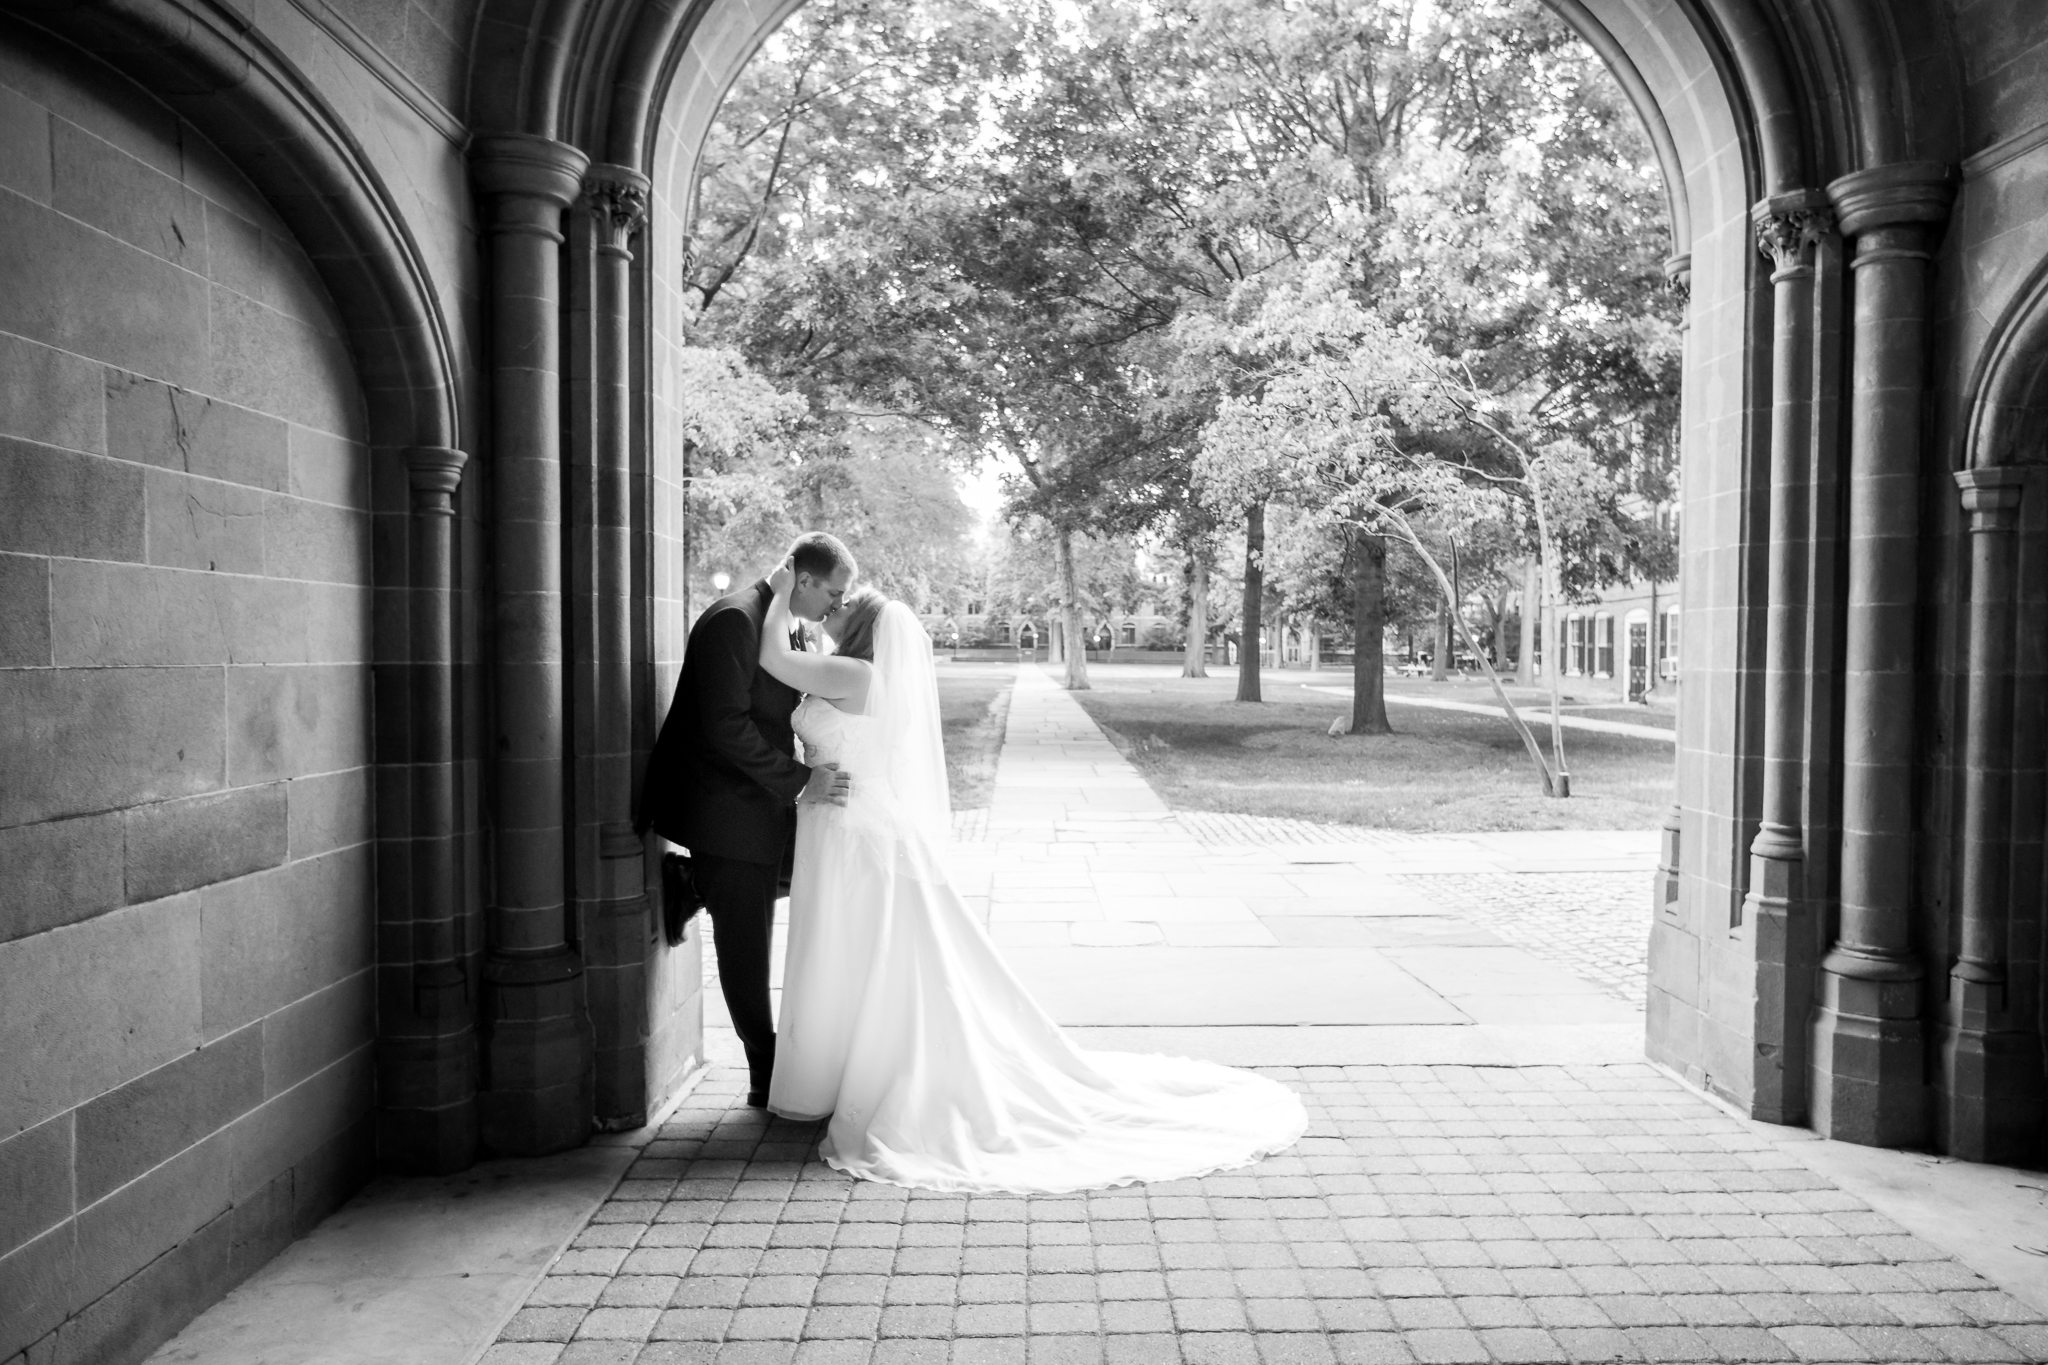 Ashley + Ryan | Cherish the Dress | Shaina Lee Photography | Connecticut + Destination Wedding Photographer | Connecticut Wedding | CT Wedding at Yale University | New Haven, CT Wedding